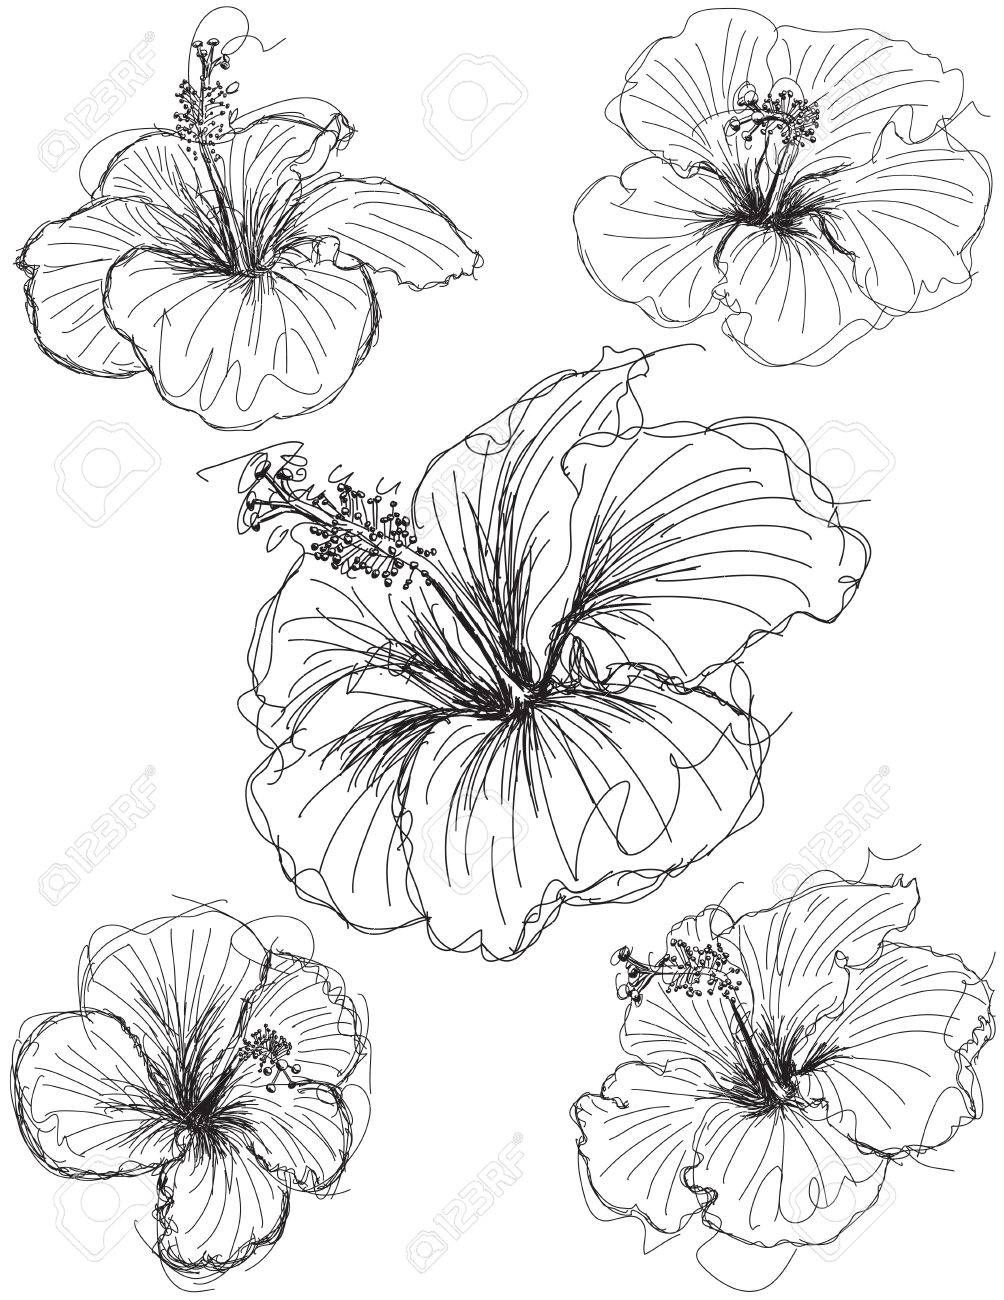 Hibiscus flower sketches hand drawn hibiscus flower sketches hibiscus flower sketches hand drawn hibiscus flower sketches stock vector 38433242 izmirmasajfo